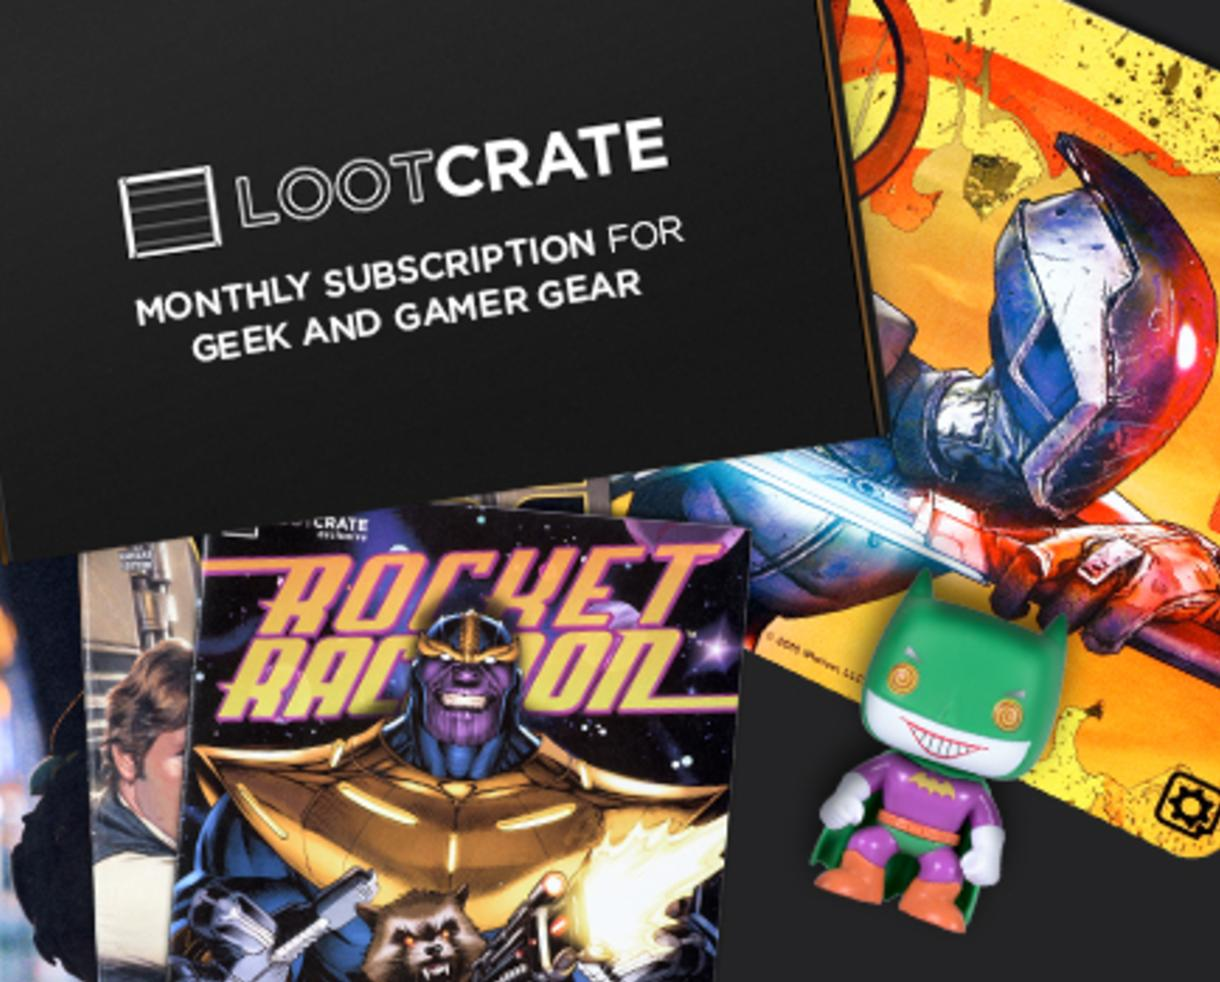 Discounted Subscription to Loot Crate - The Ultimate Gift for Geek ...